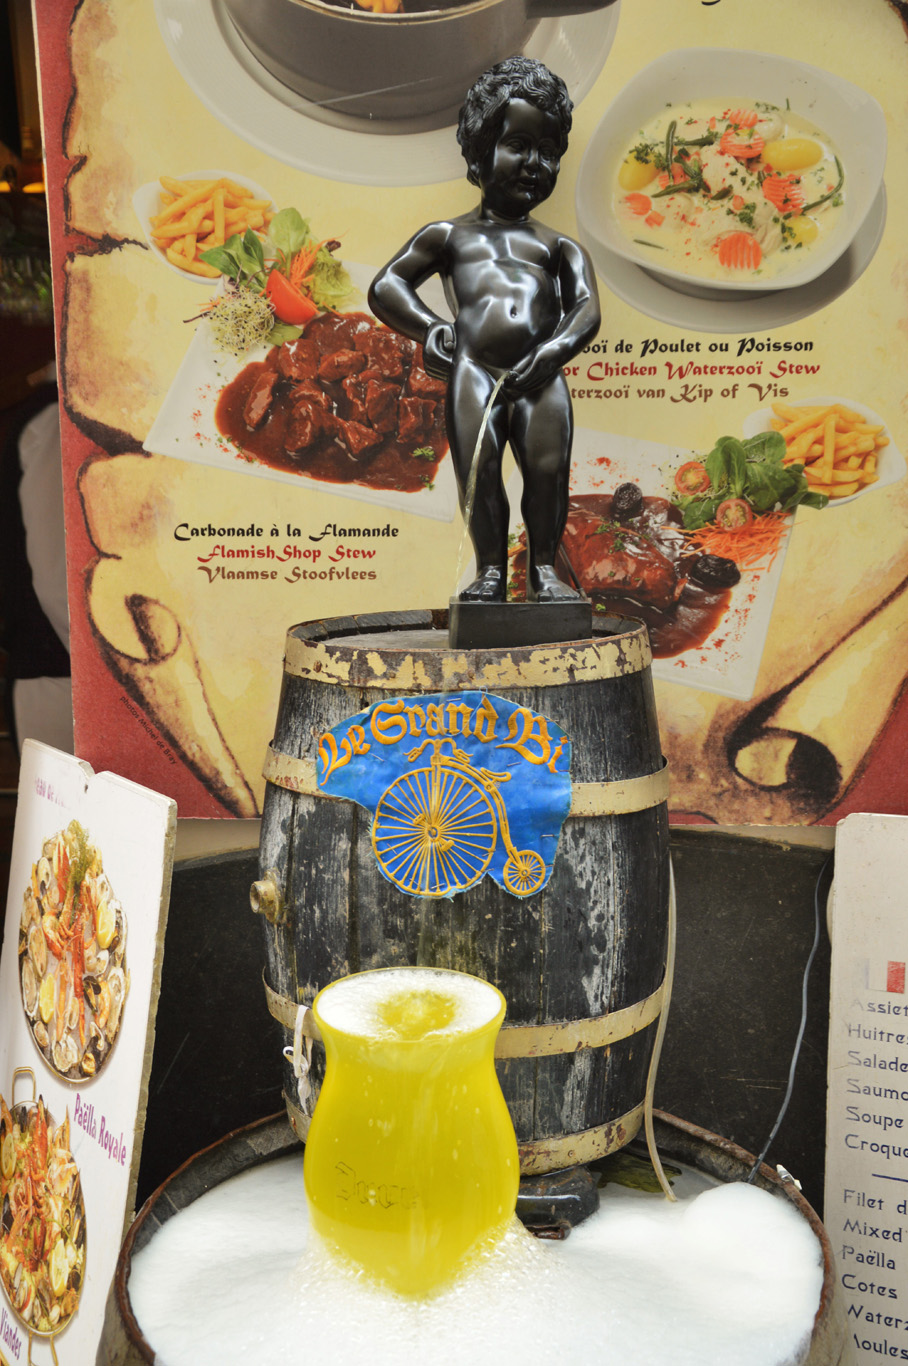 The statue of Manneken Pis in a restaurant (not the original one)